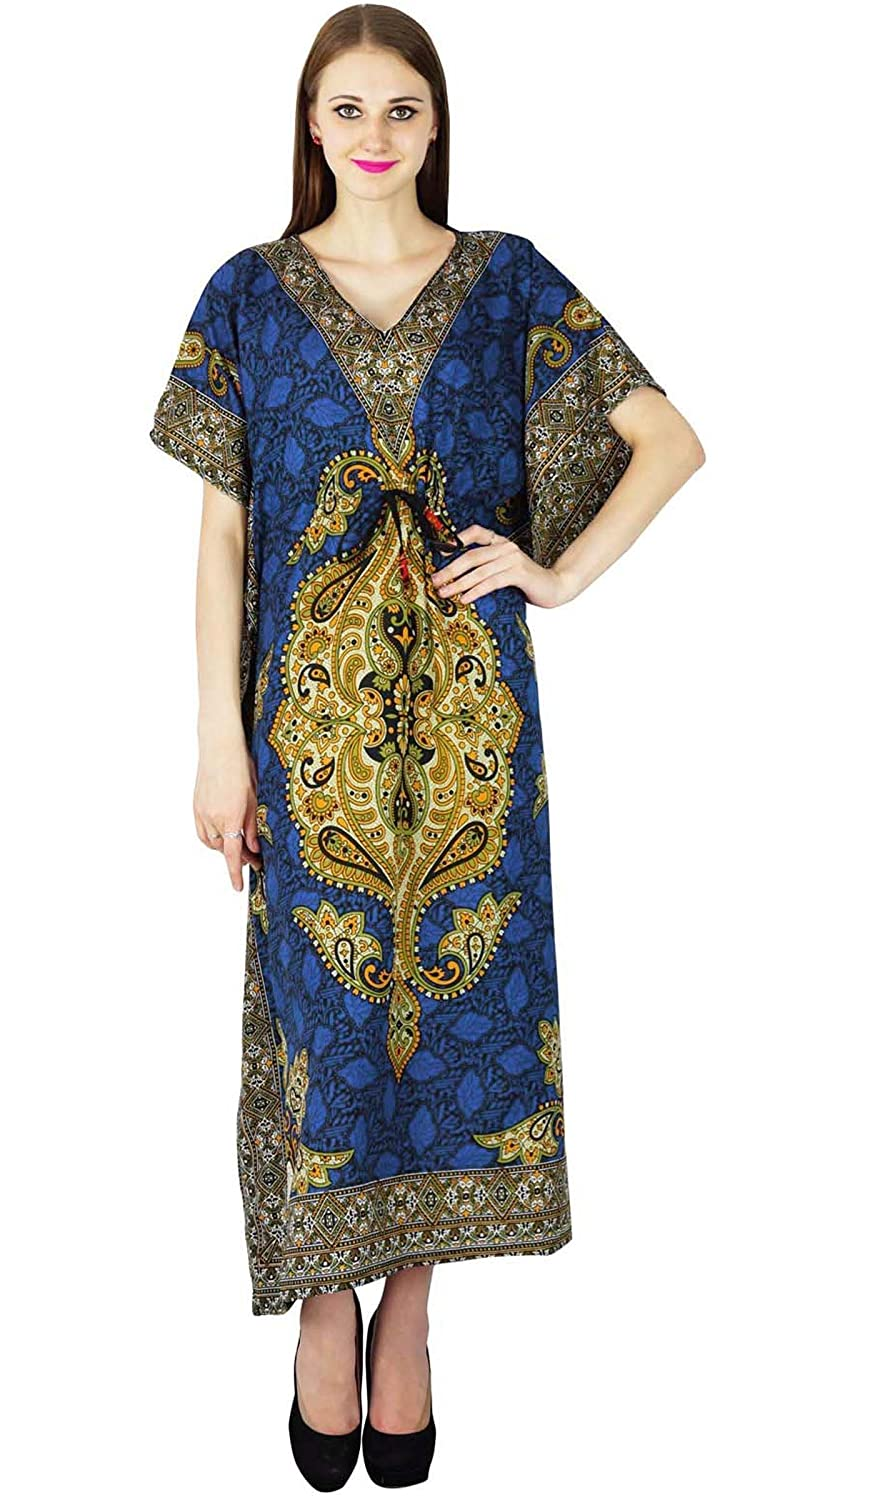 Strand-Vertuschung Kaftan Boho Hippy Indian Plus Size Tunika Neue Frauen-Kleid Kaftan